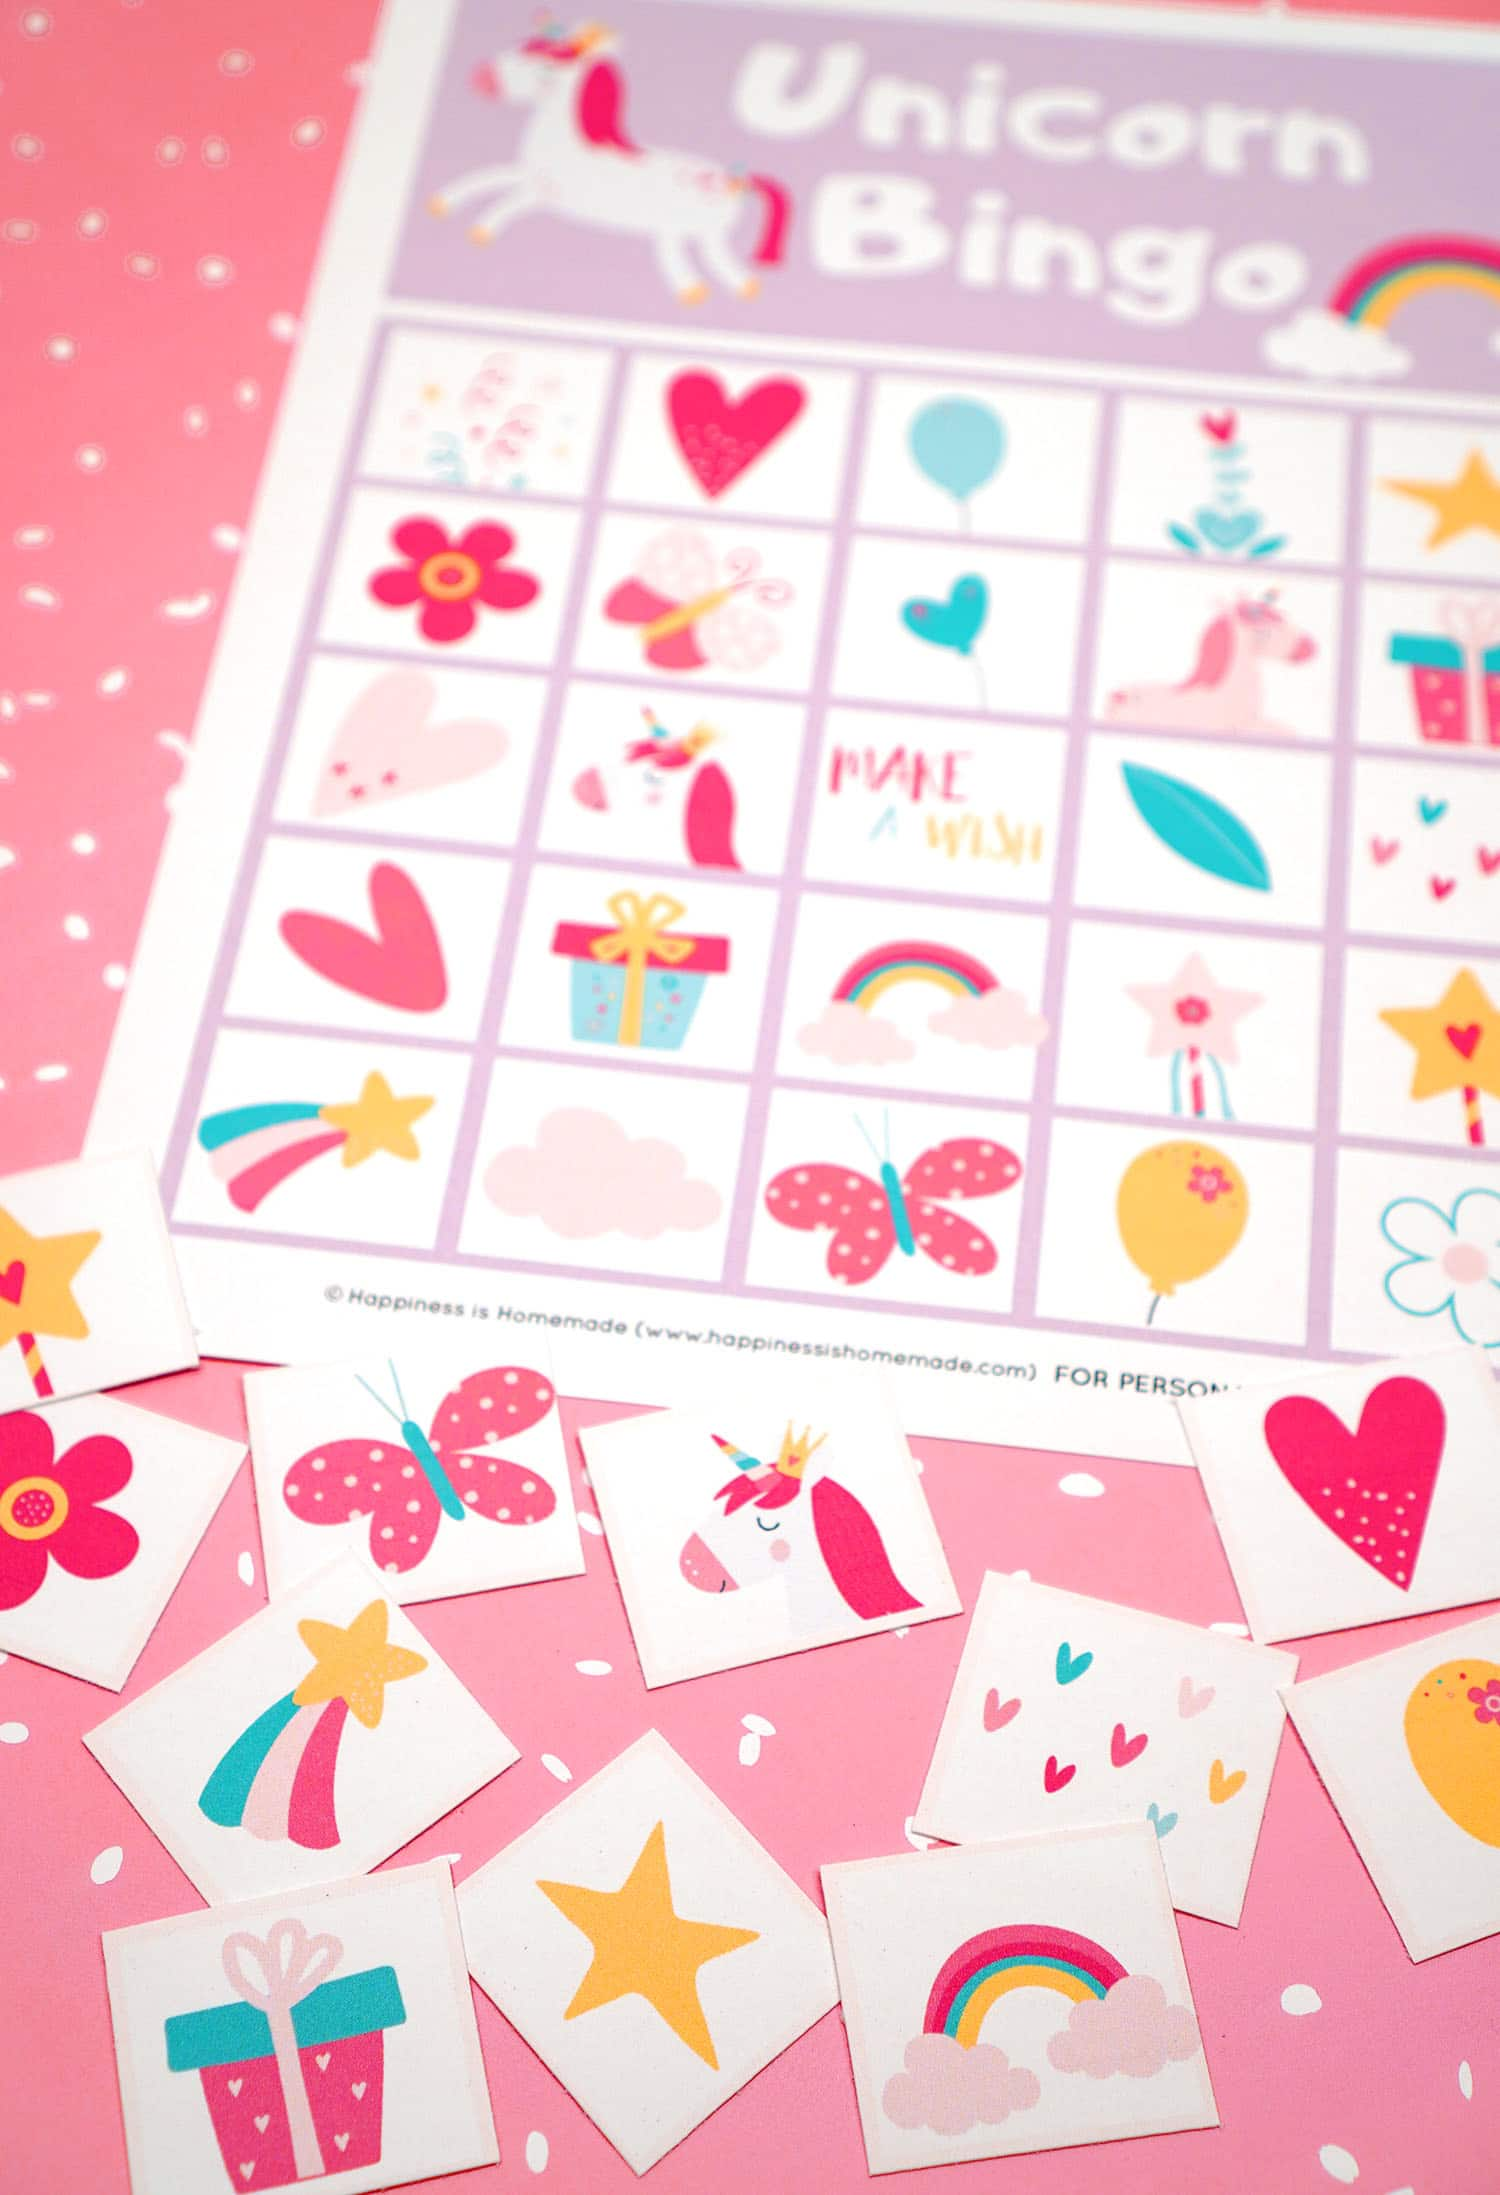 Printable Unicorn Bingo Game Cards and calling cards on pink background with